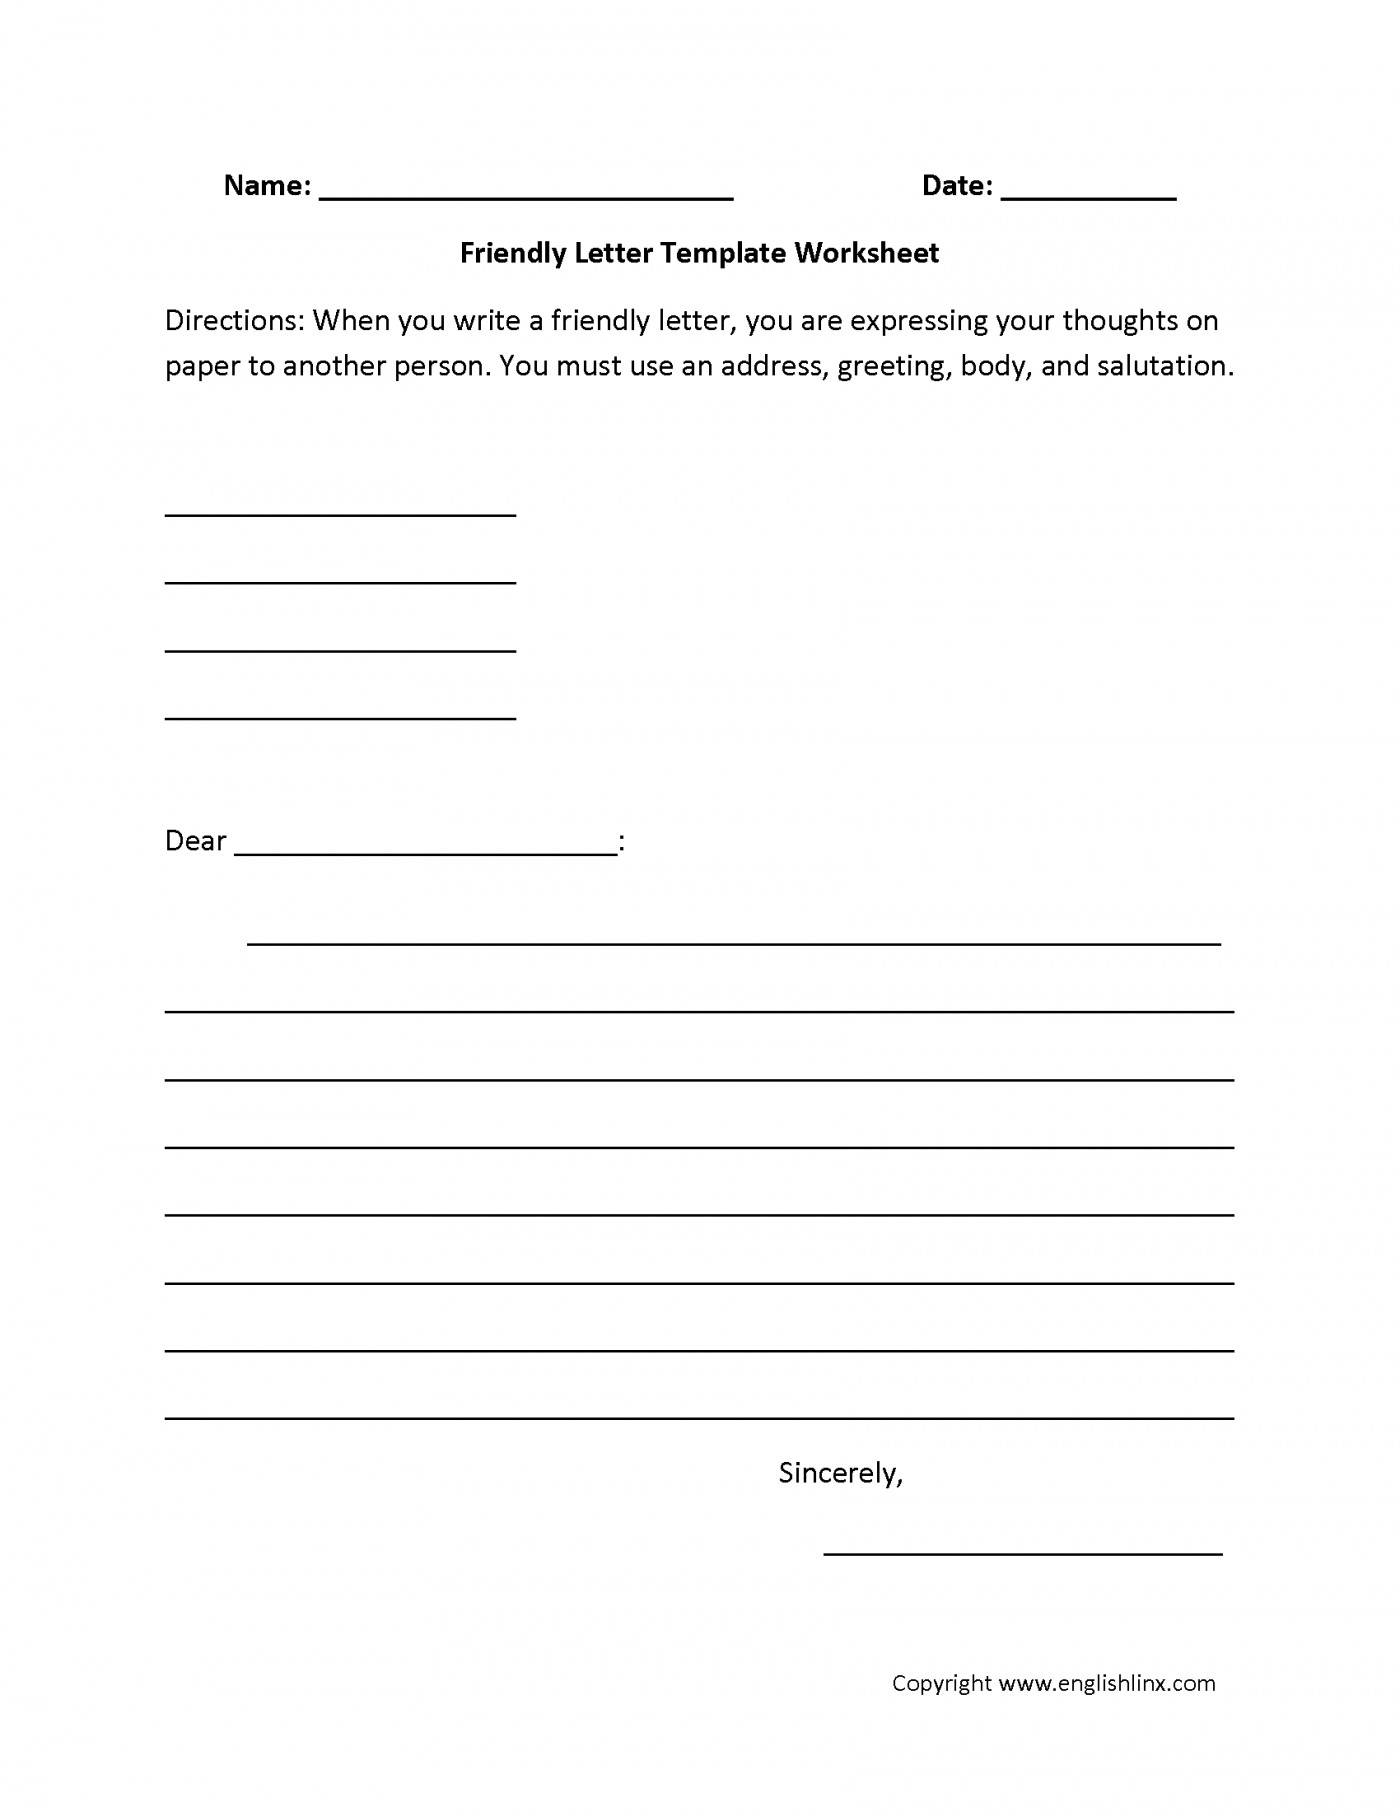 011 Essay Example About Friendly Stupendous On Eco Diwali In Hindi Environmentally Letter 1400